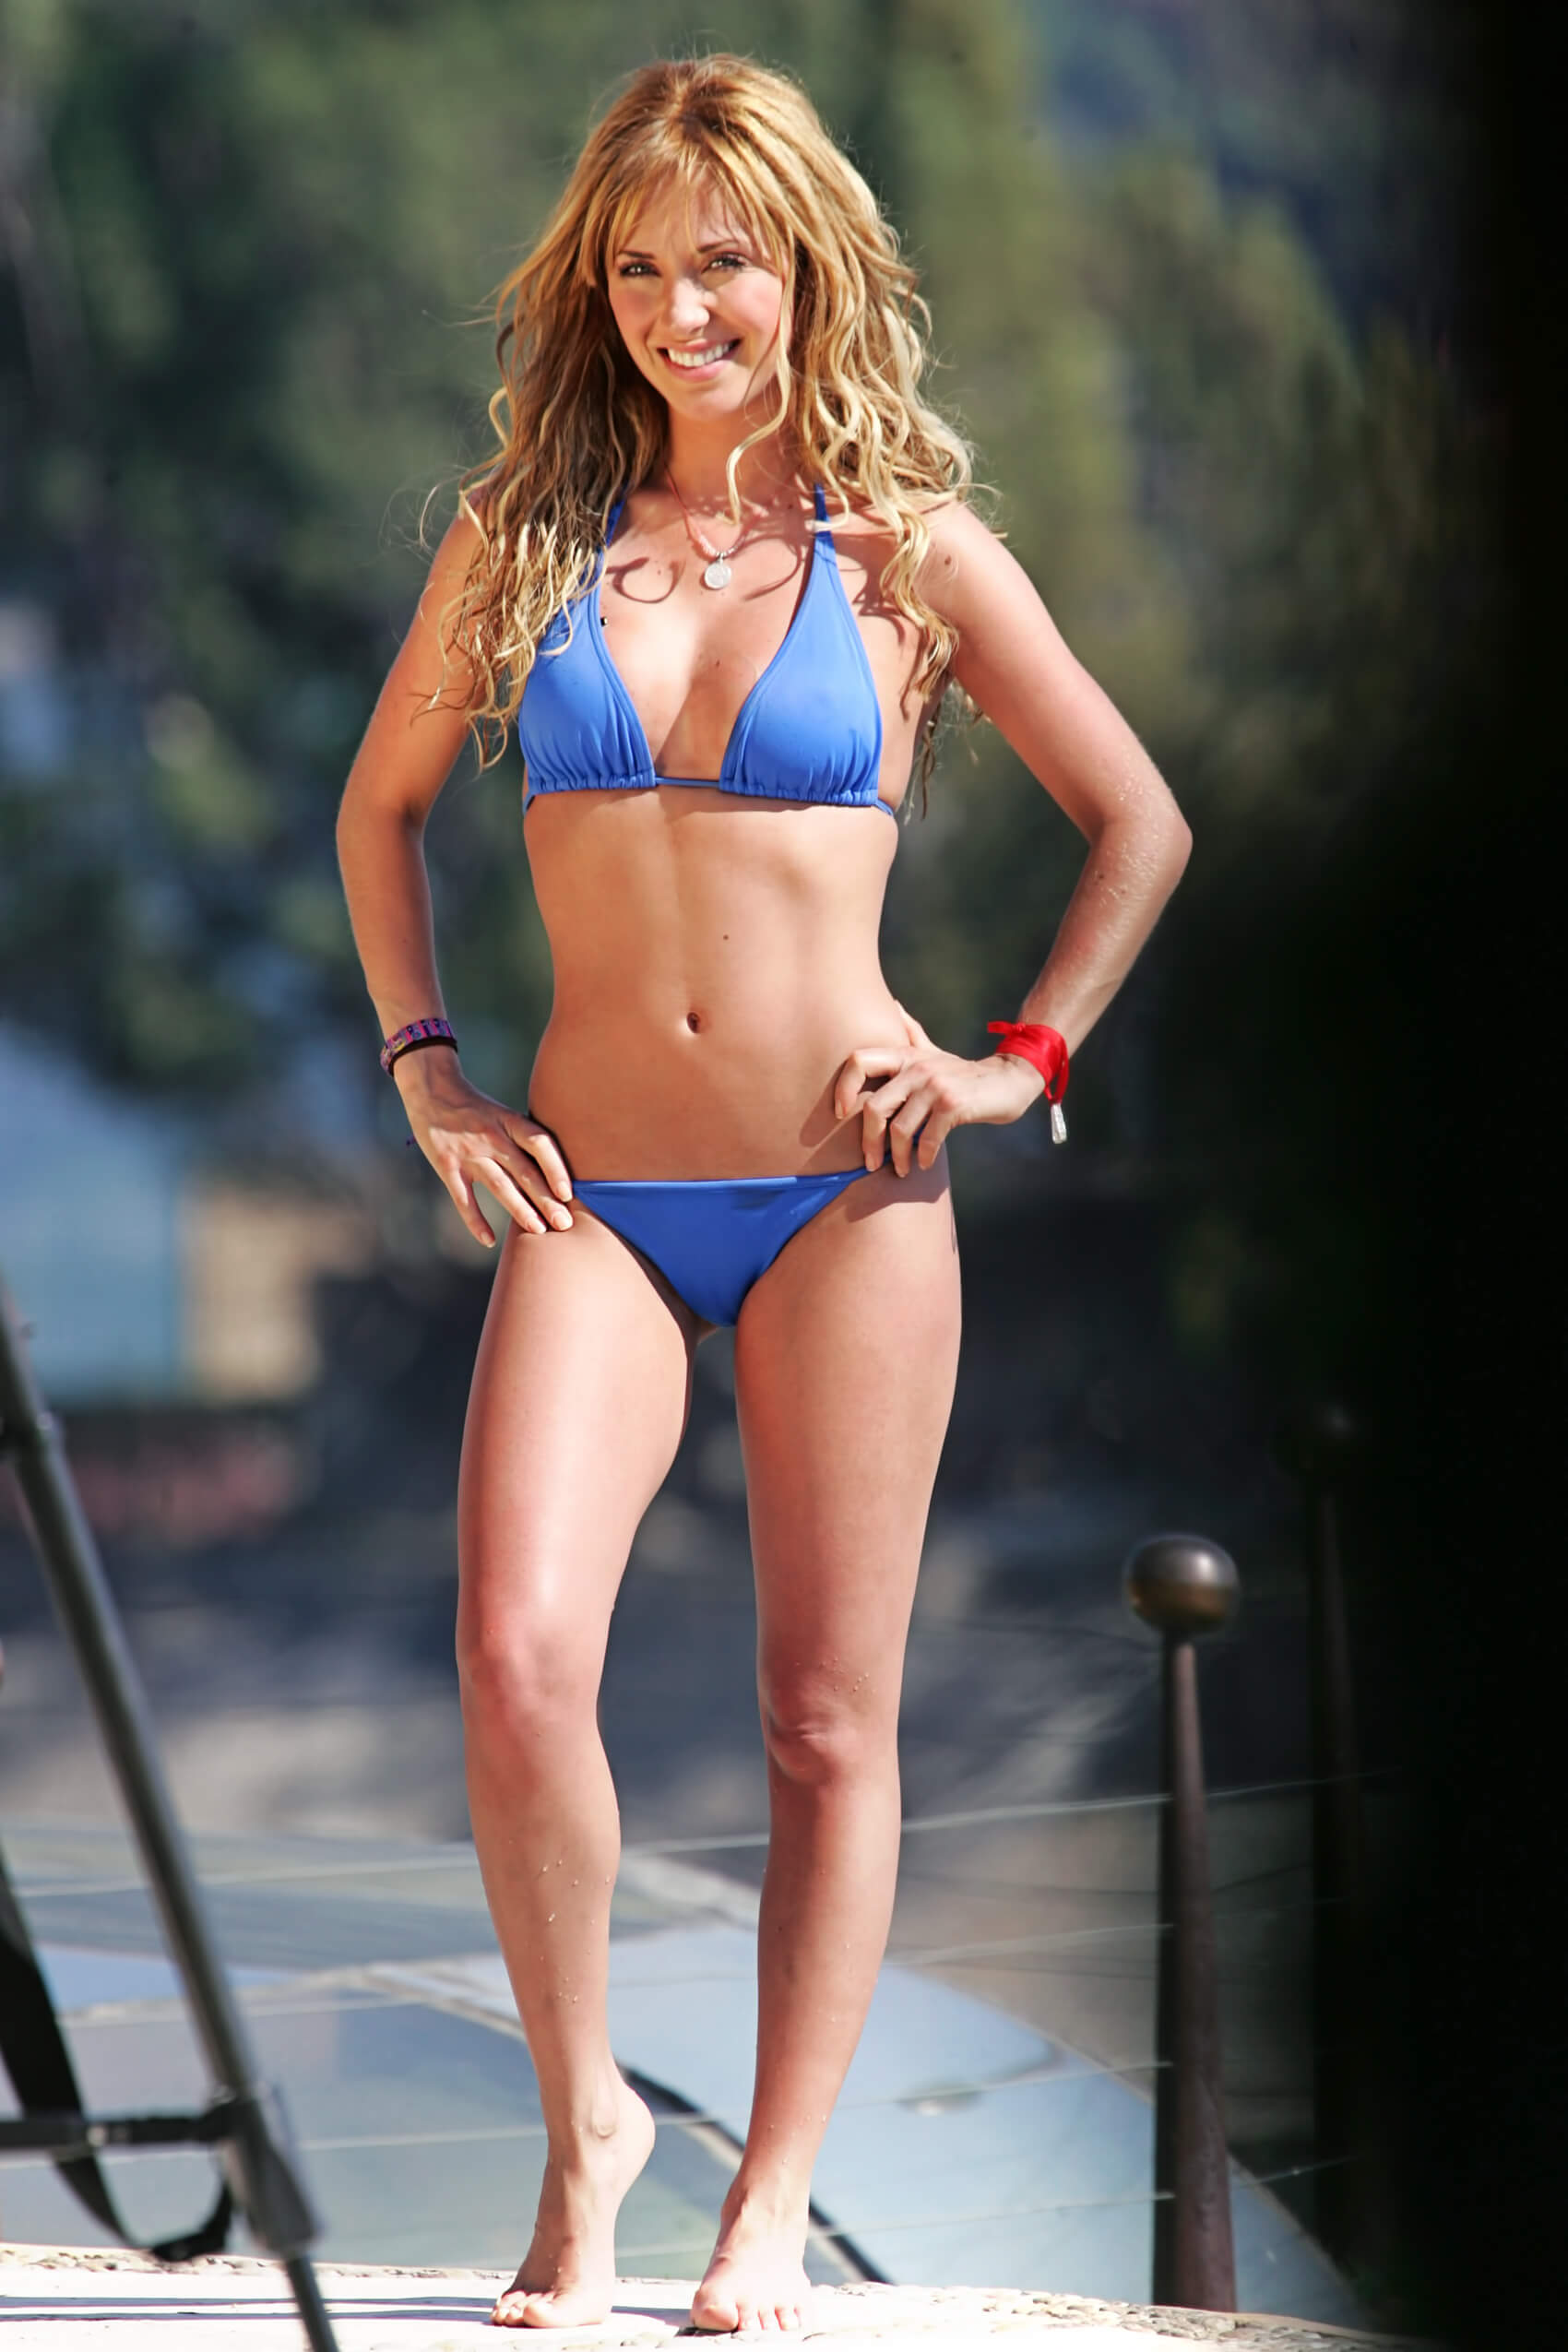 Anahi Hot 49 hot pictures of anahi which are absolutely mouth-watering